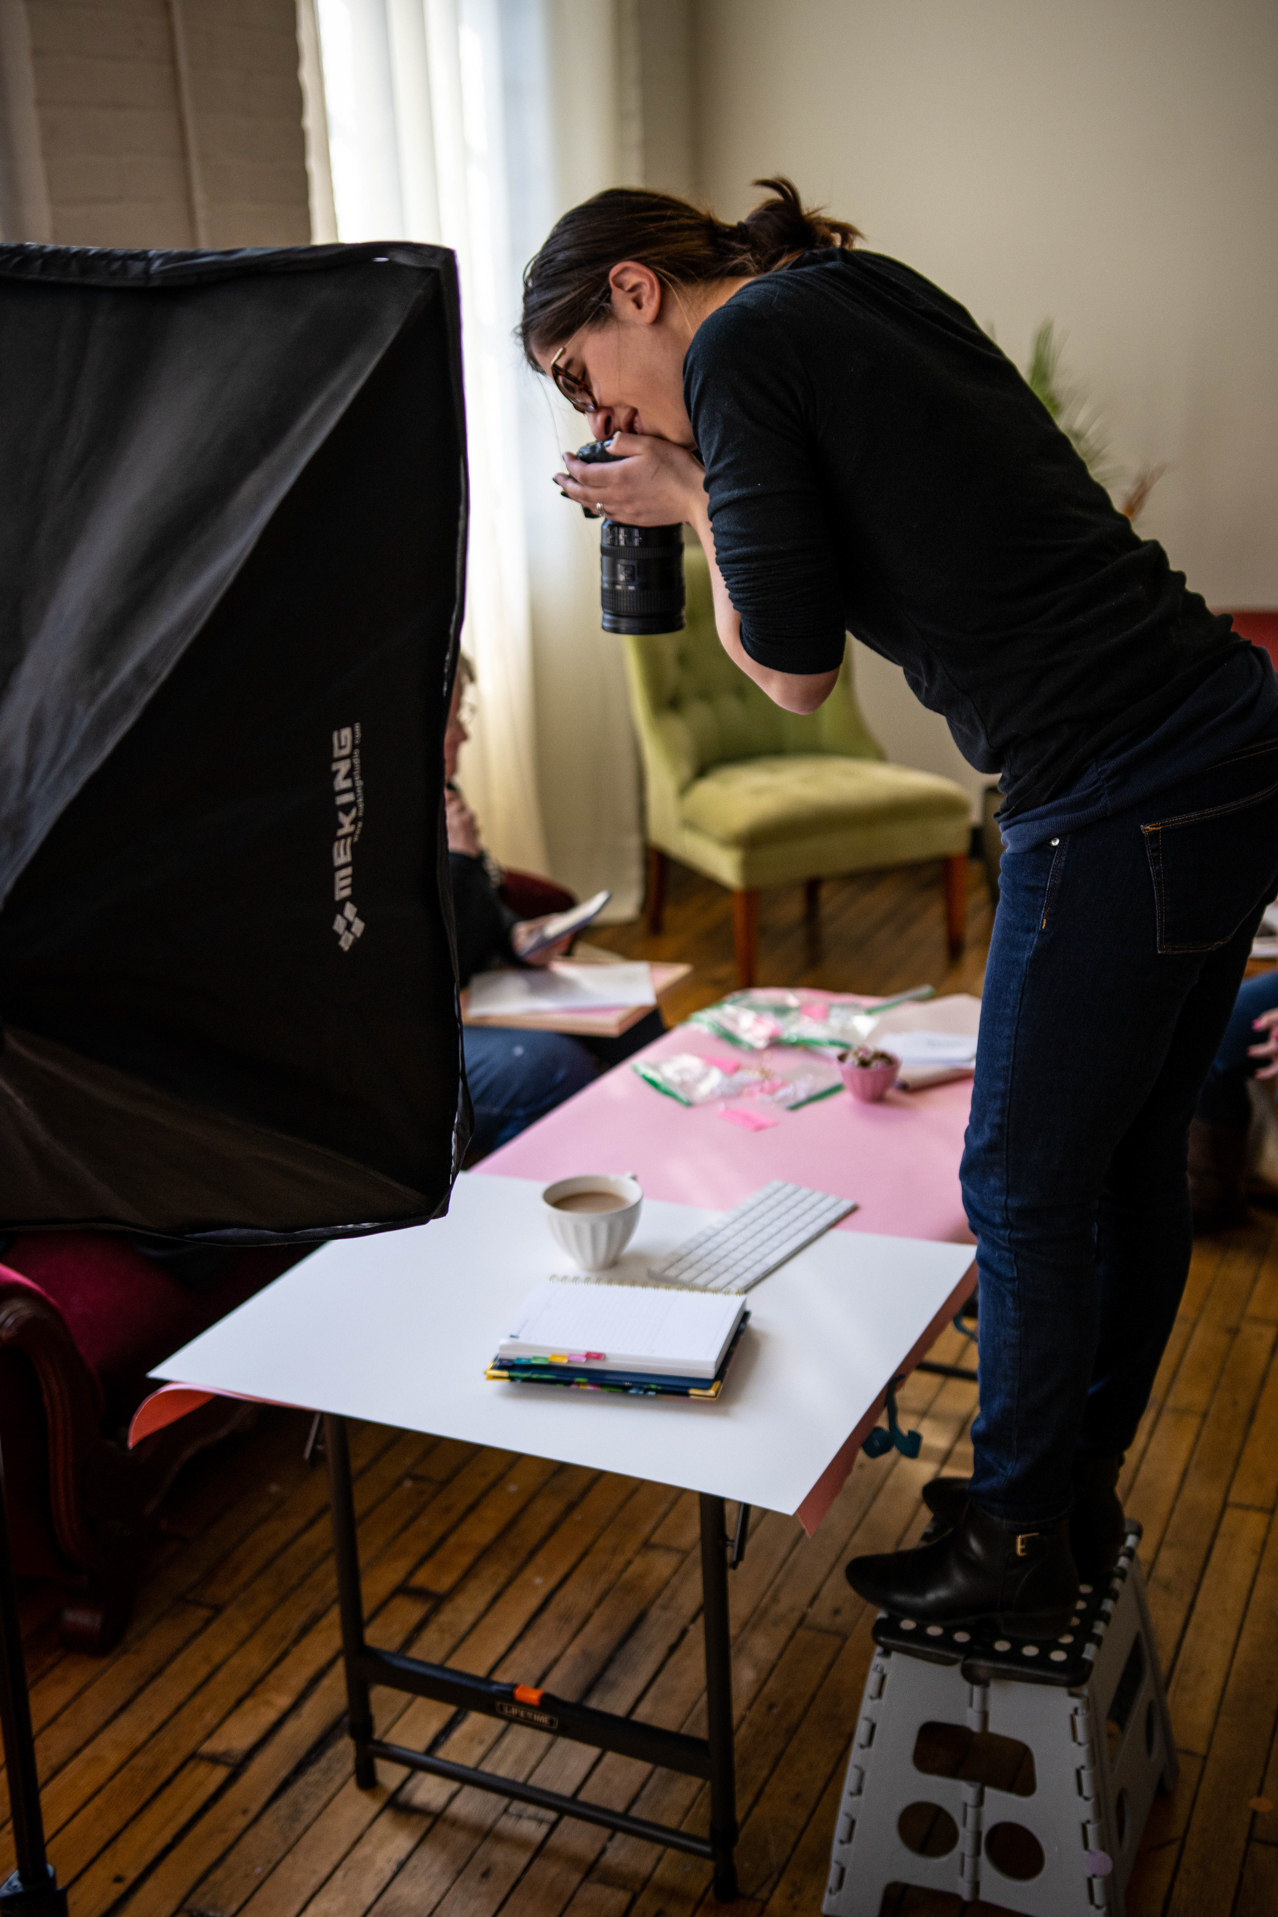 behind the scenes of jamie bannon photography brand shoot with the productivity zone, photographed by chris wilson.